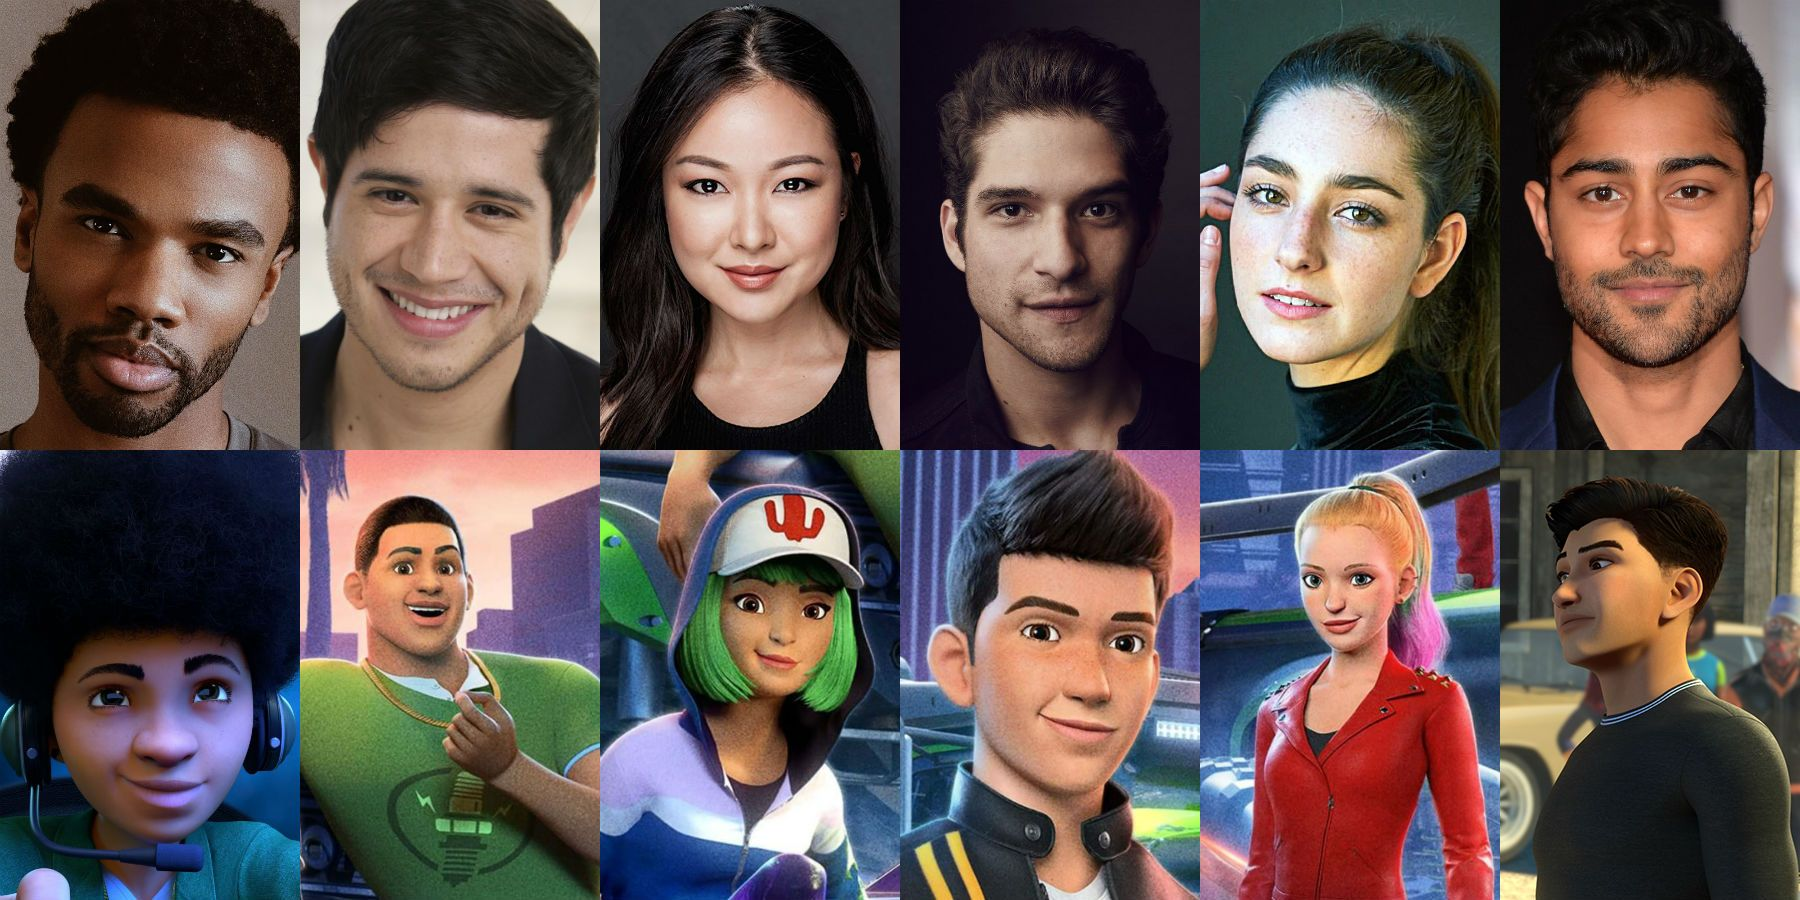 Fast & Furious Spy Racers: Voice Cast & Character Guide